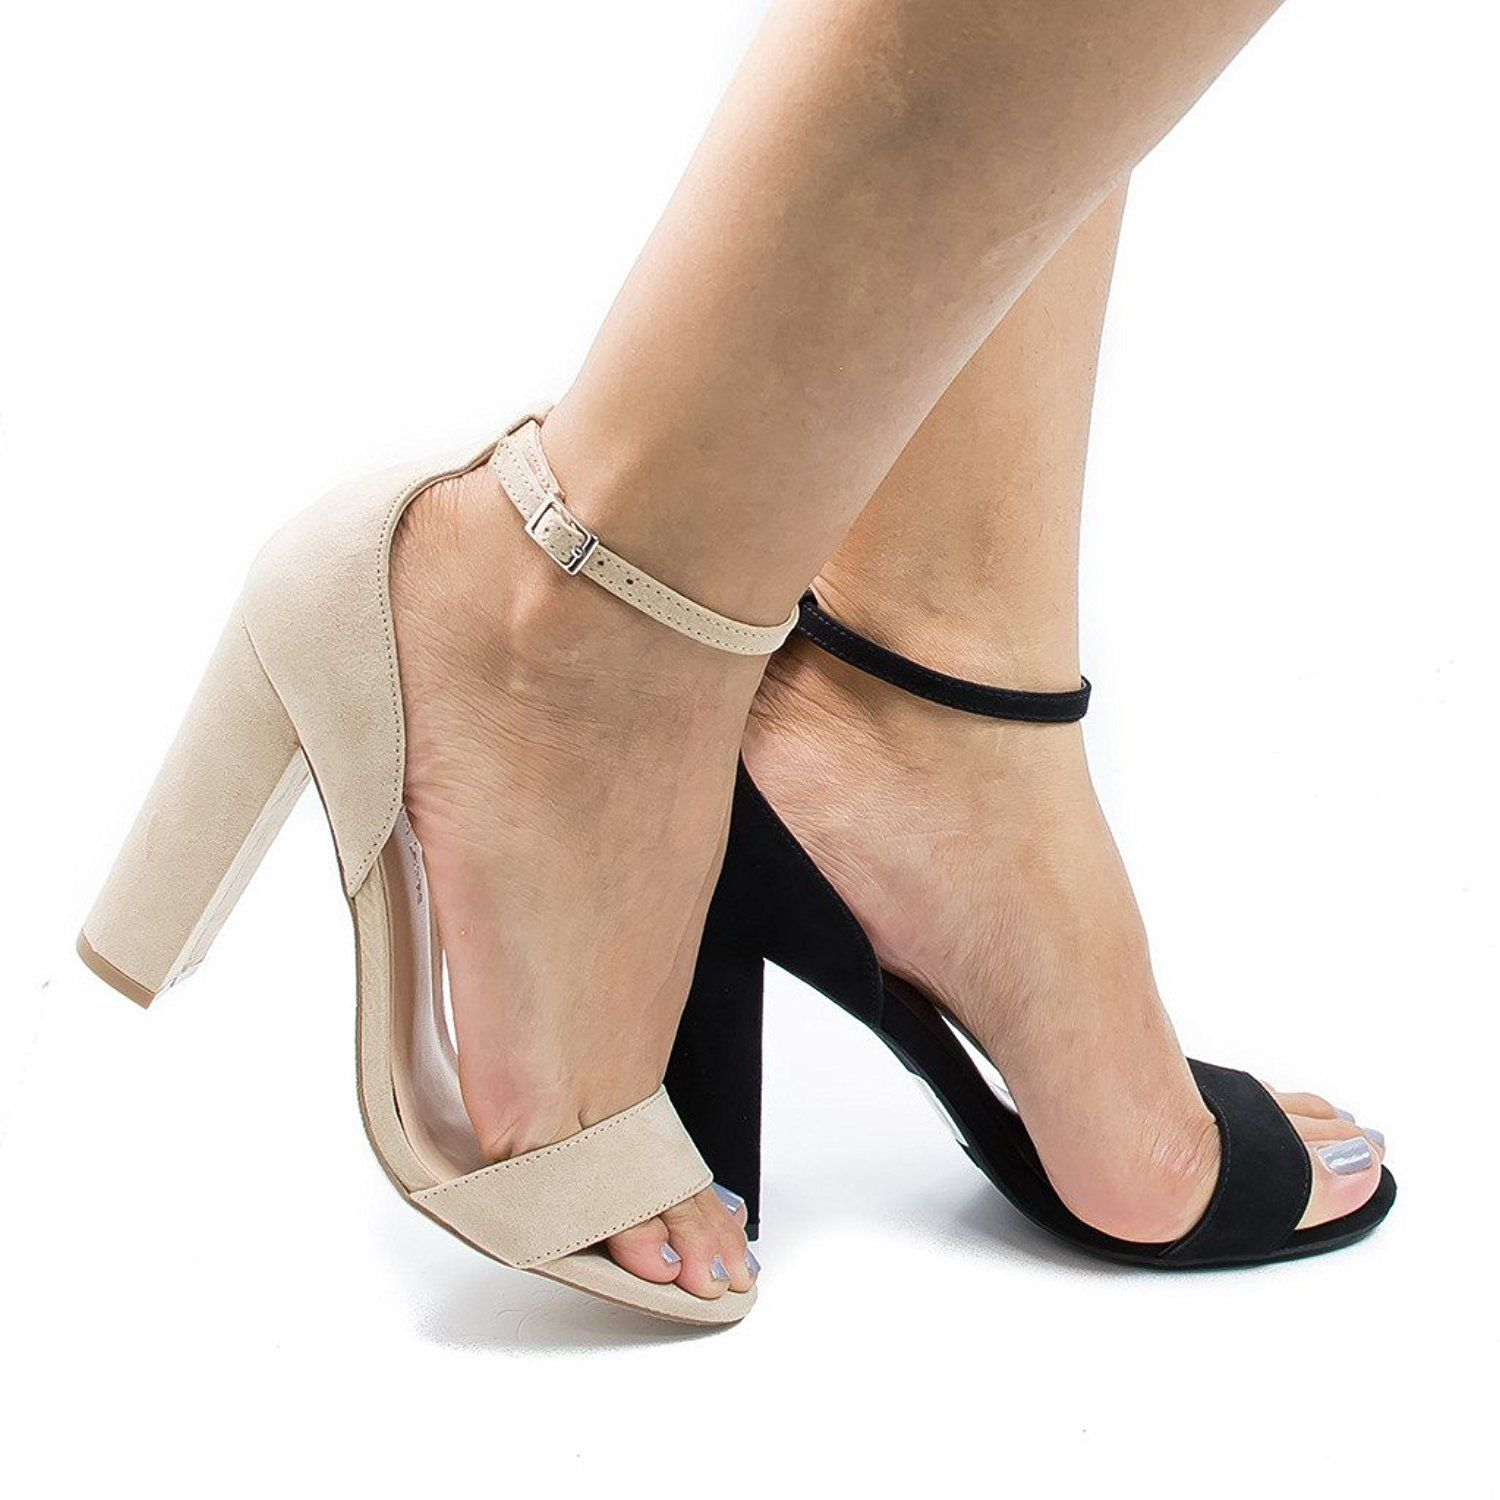 7524116bf68 Morris02 NaturalSued Open Toe Ankle Cuff Chunky Heeled Dress Sandals -5.5